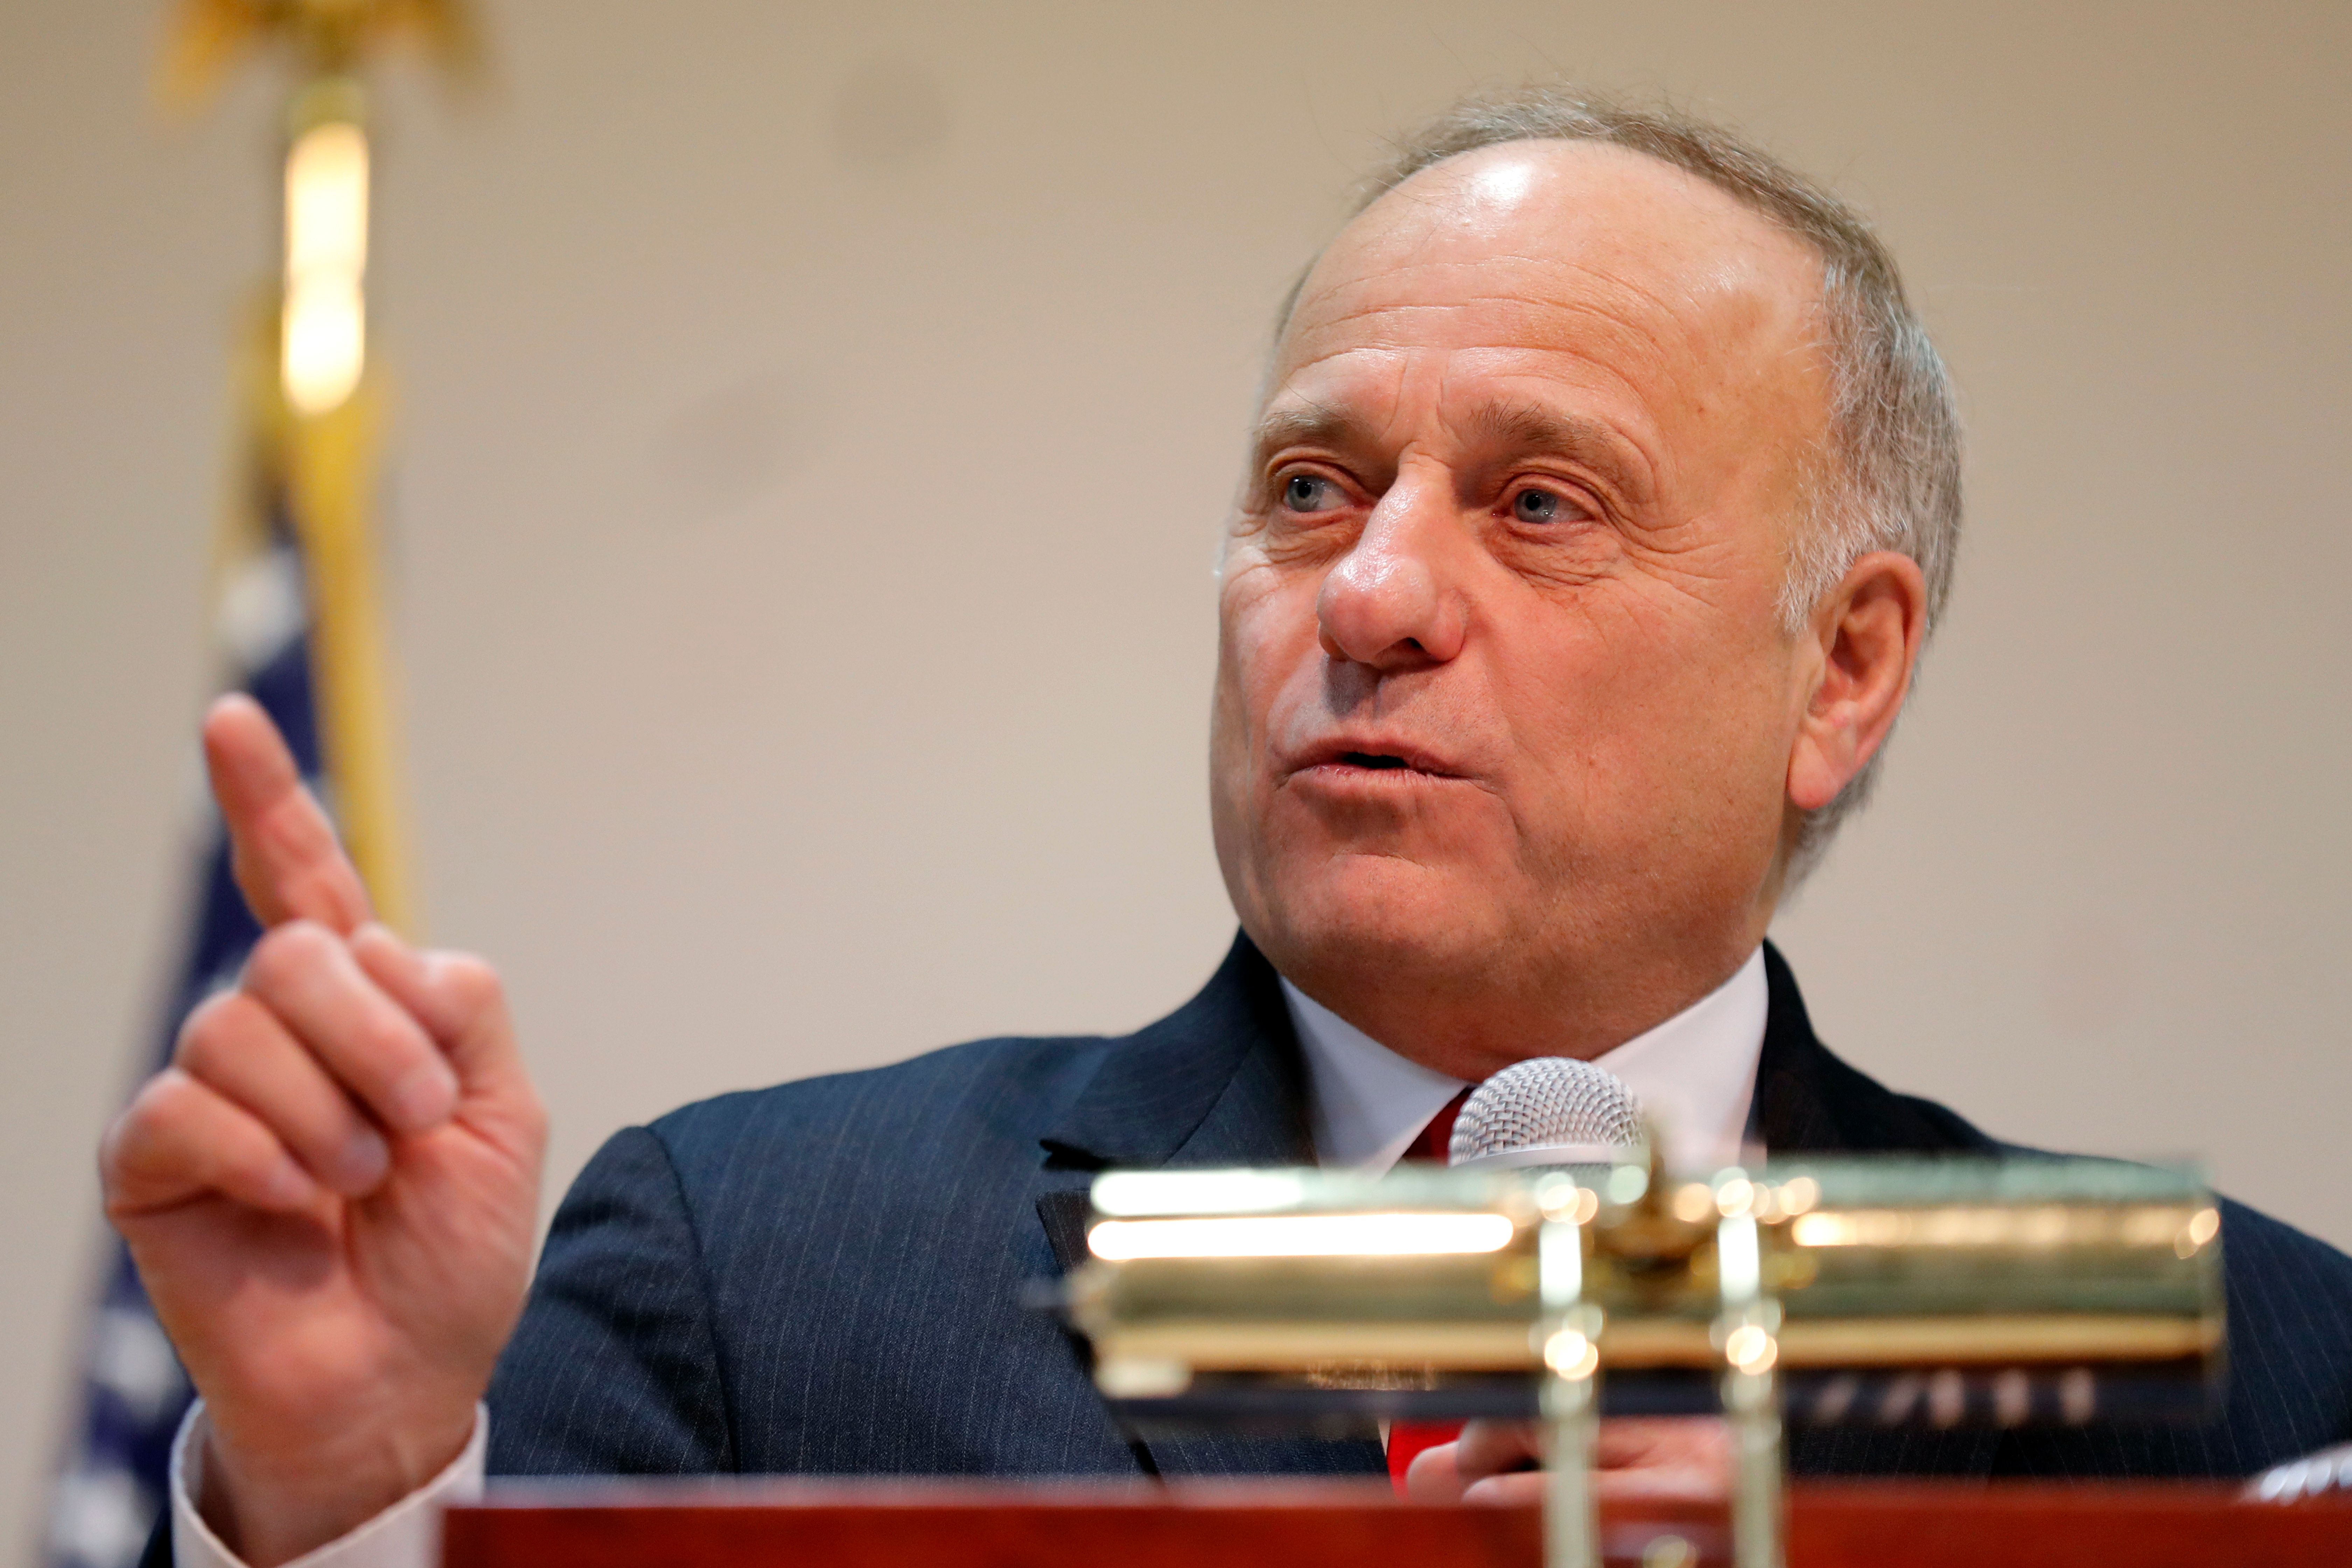 Rep Steve King Plans To Seek Re-election Wont Apologize For Racist Remarks